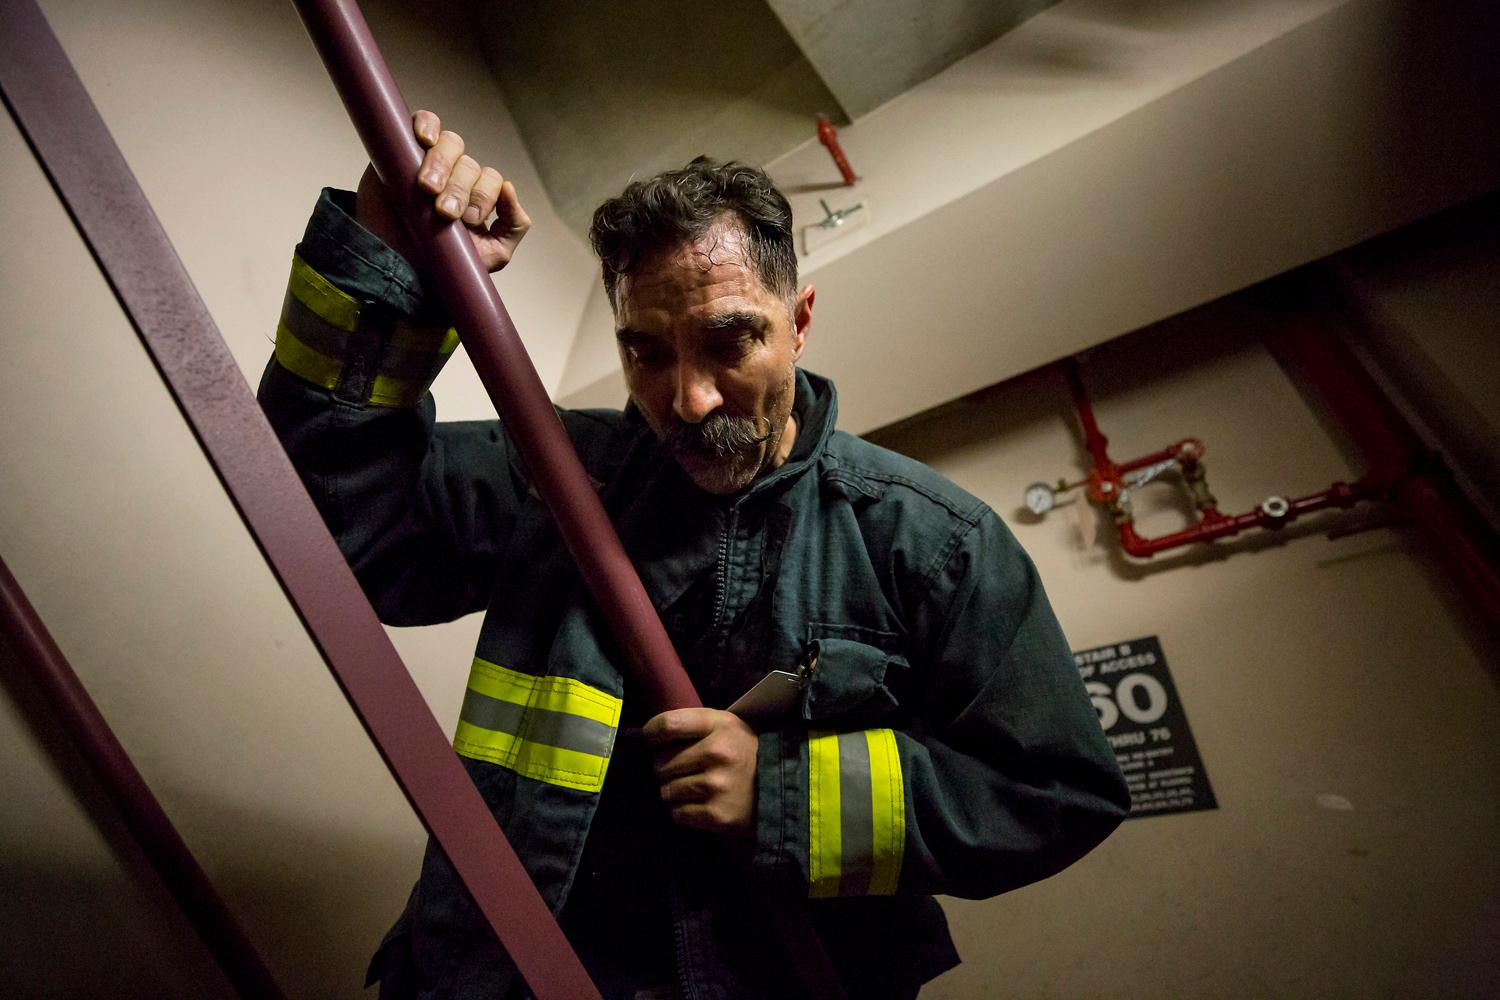 Rich Brown, lead ambassador and firefighter from Boise, Idaho, does a training climb for the Scott Firefight Stairclimb that benefits the Leukemia & Lymphoma Society on Friday, March 9, 2018. 2,000 firefighters will climb the 69 floors (1,356 stairs!) on Sunday to the Sky View Observatory of the Columbia Tower. To donate to this cause, please visit www.firefighterstairclimb.org. (Sy Bean / Seattle Refined)